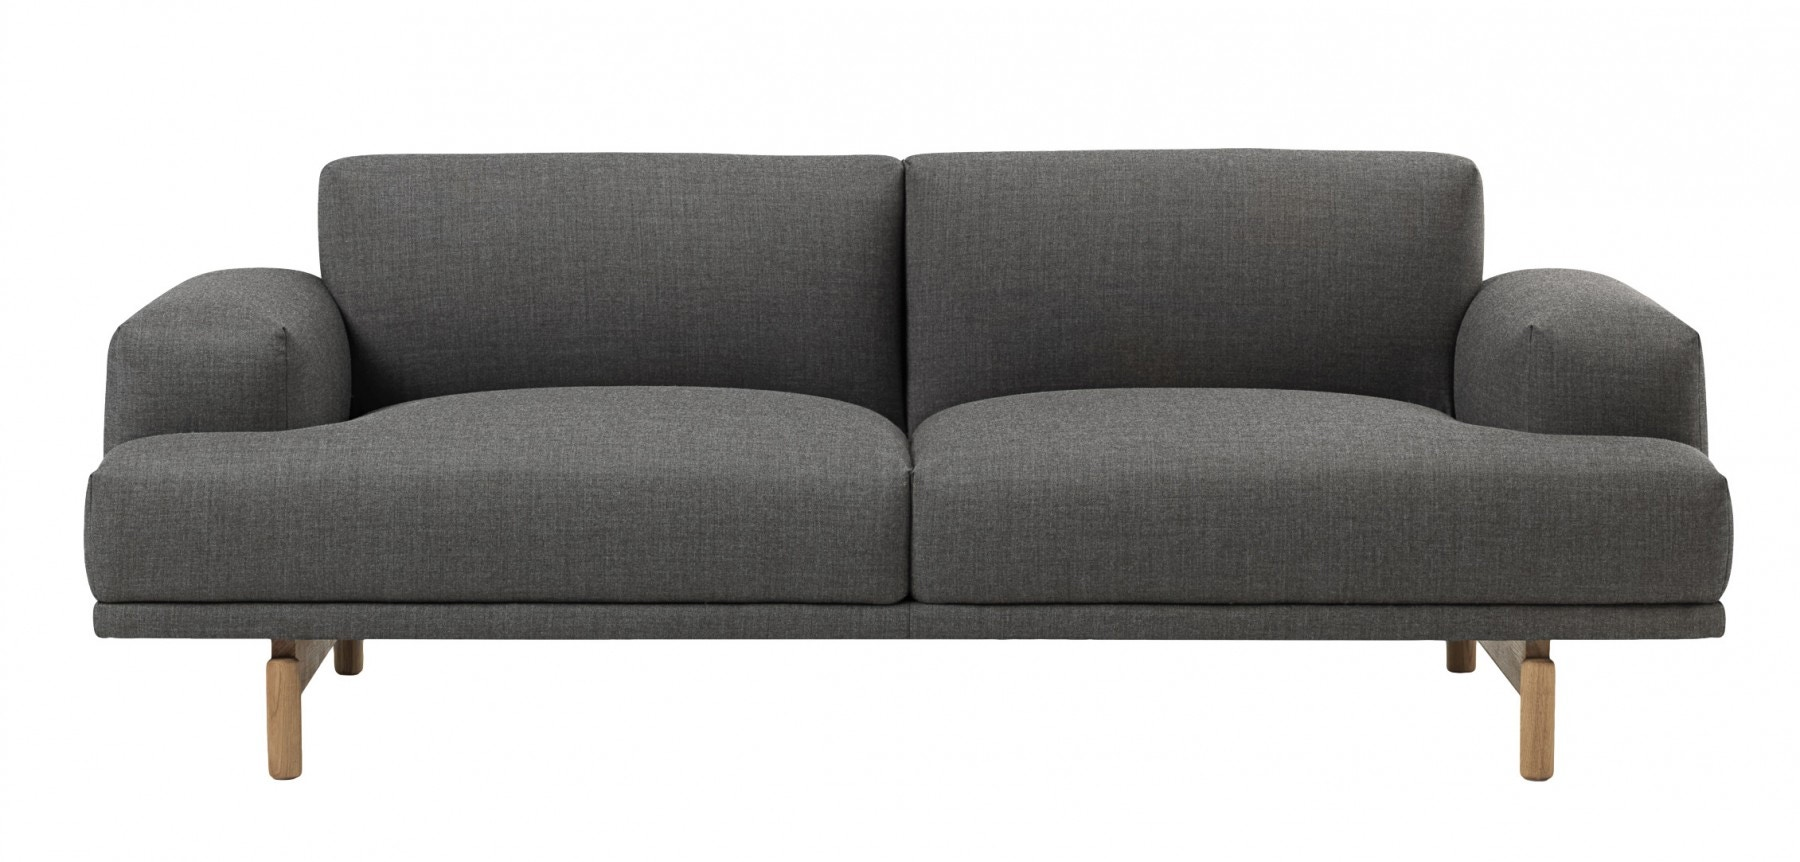 muuto compose 2 seater sofa gr shop canada. Black Bedroom Furniture Sets. Home Design Ideas